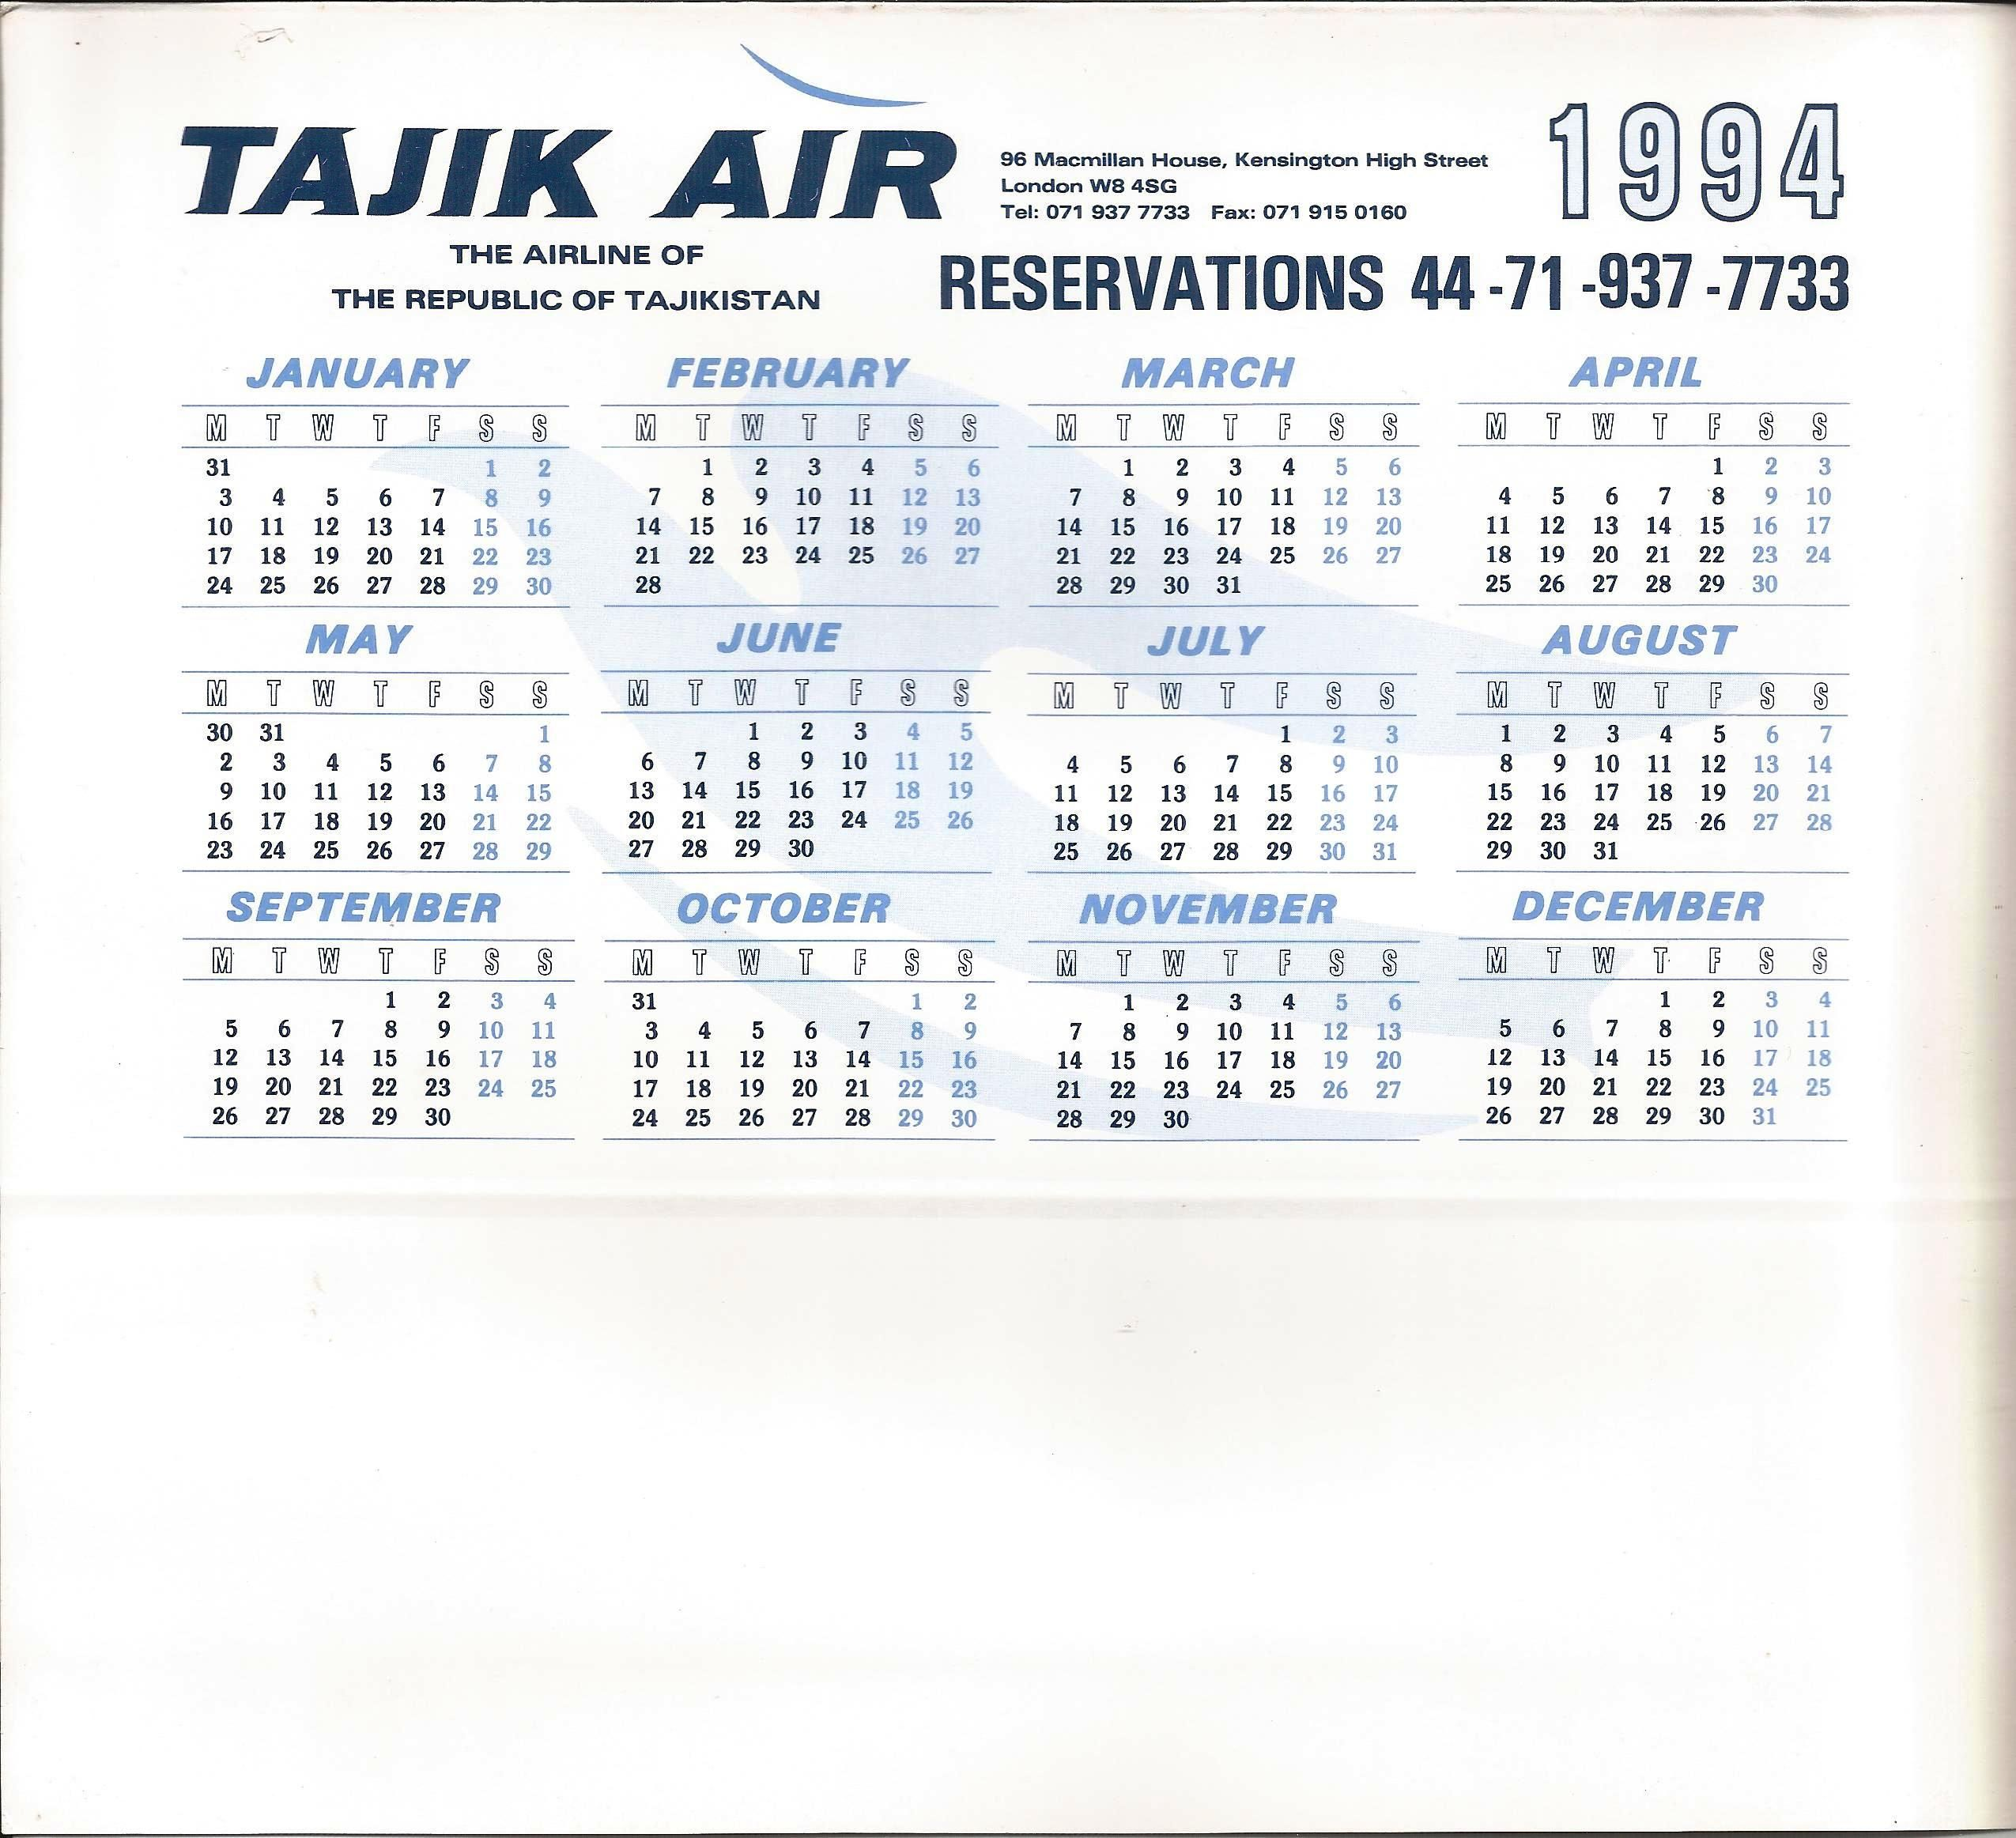 Promotional Desk Calendar Of Tajik Air The National Airline Of